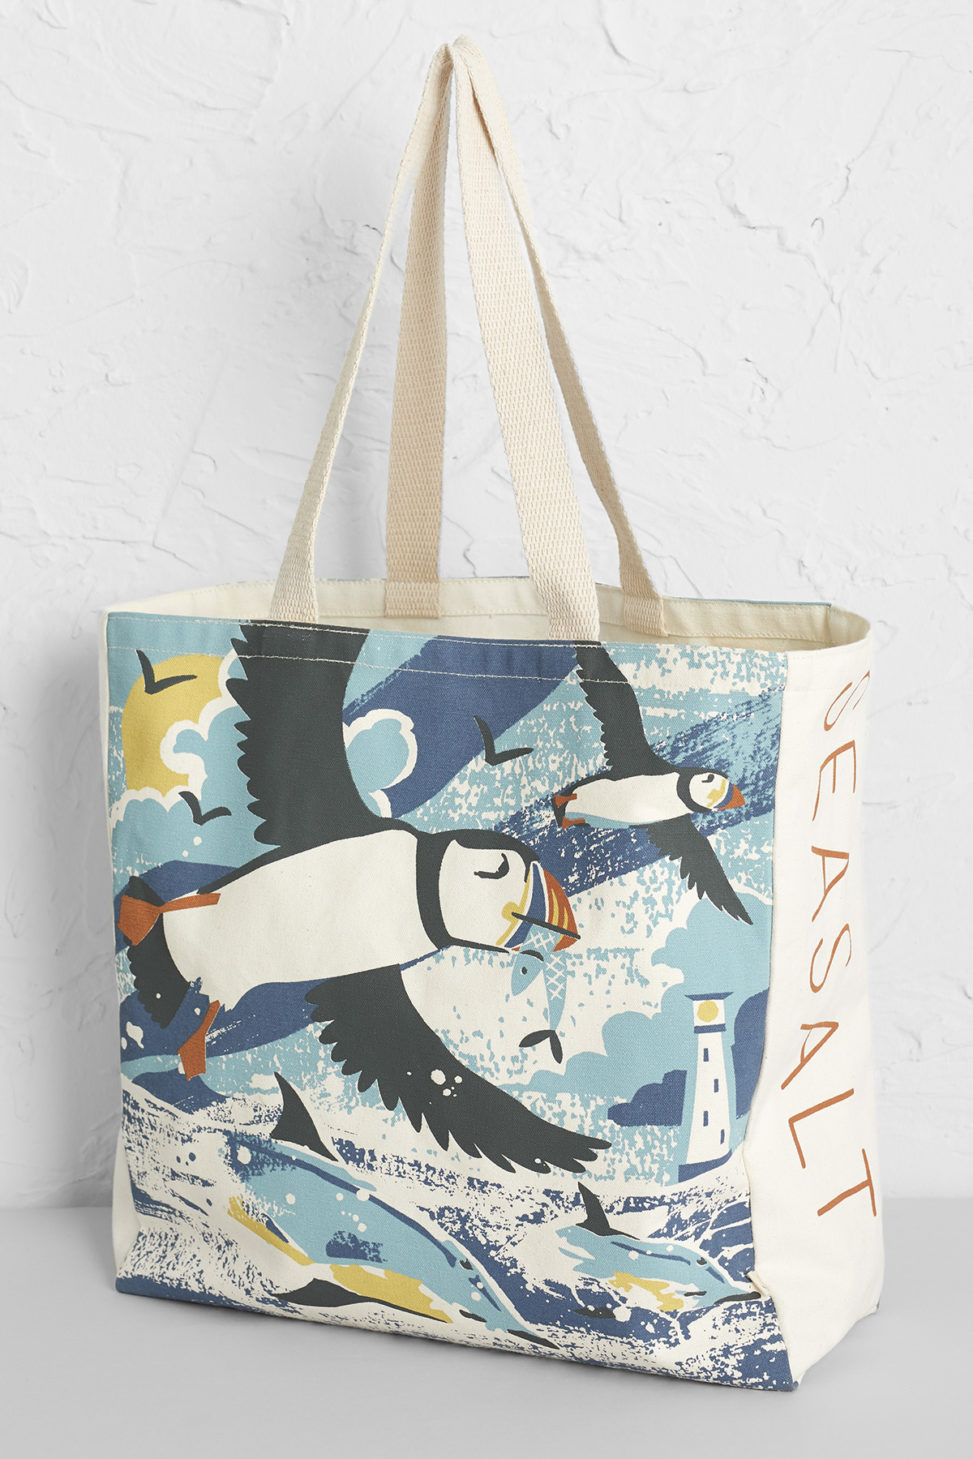 Puffins and Dolphins beach bag - print designed by Matt Johnson for Seasalt Cornwall